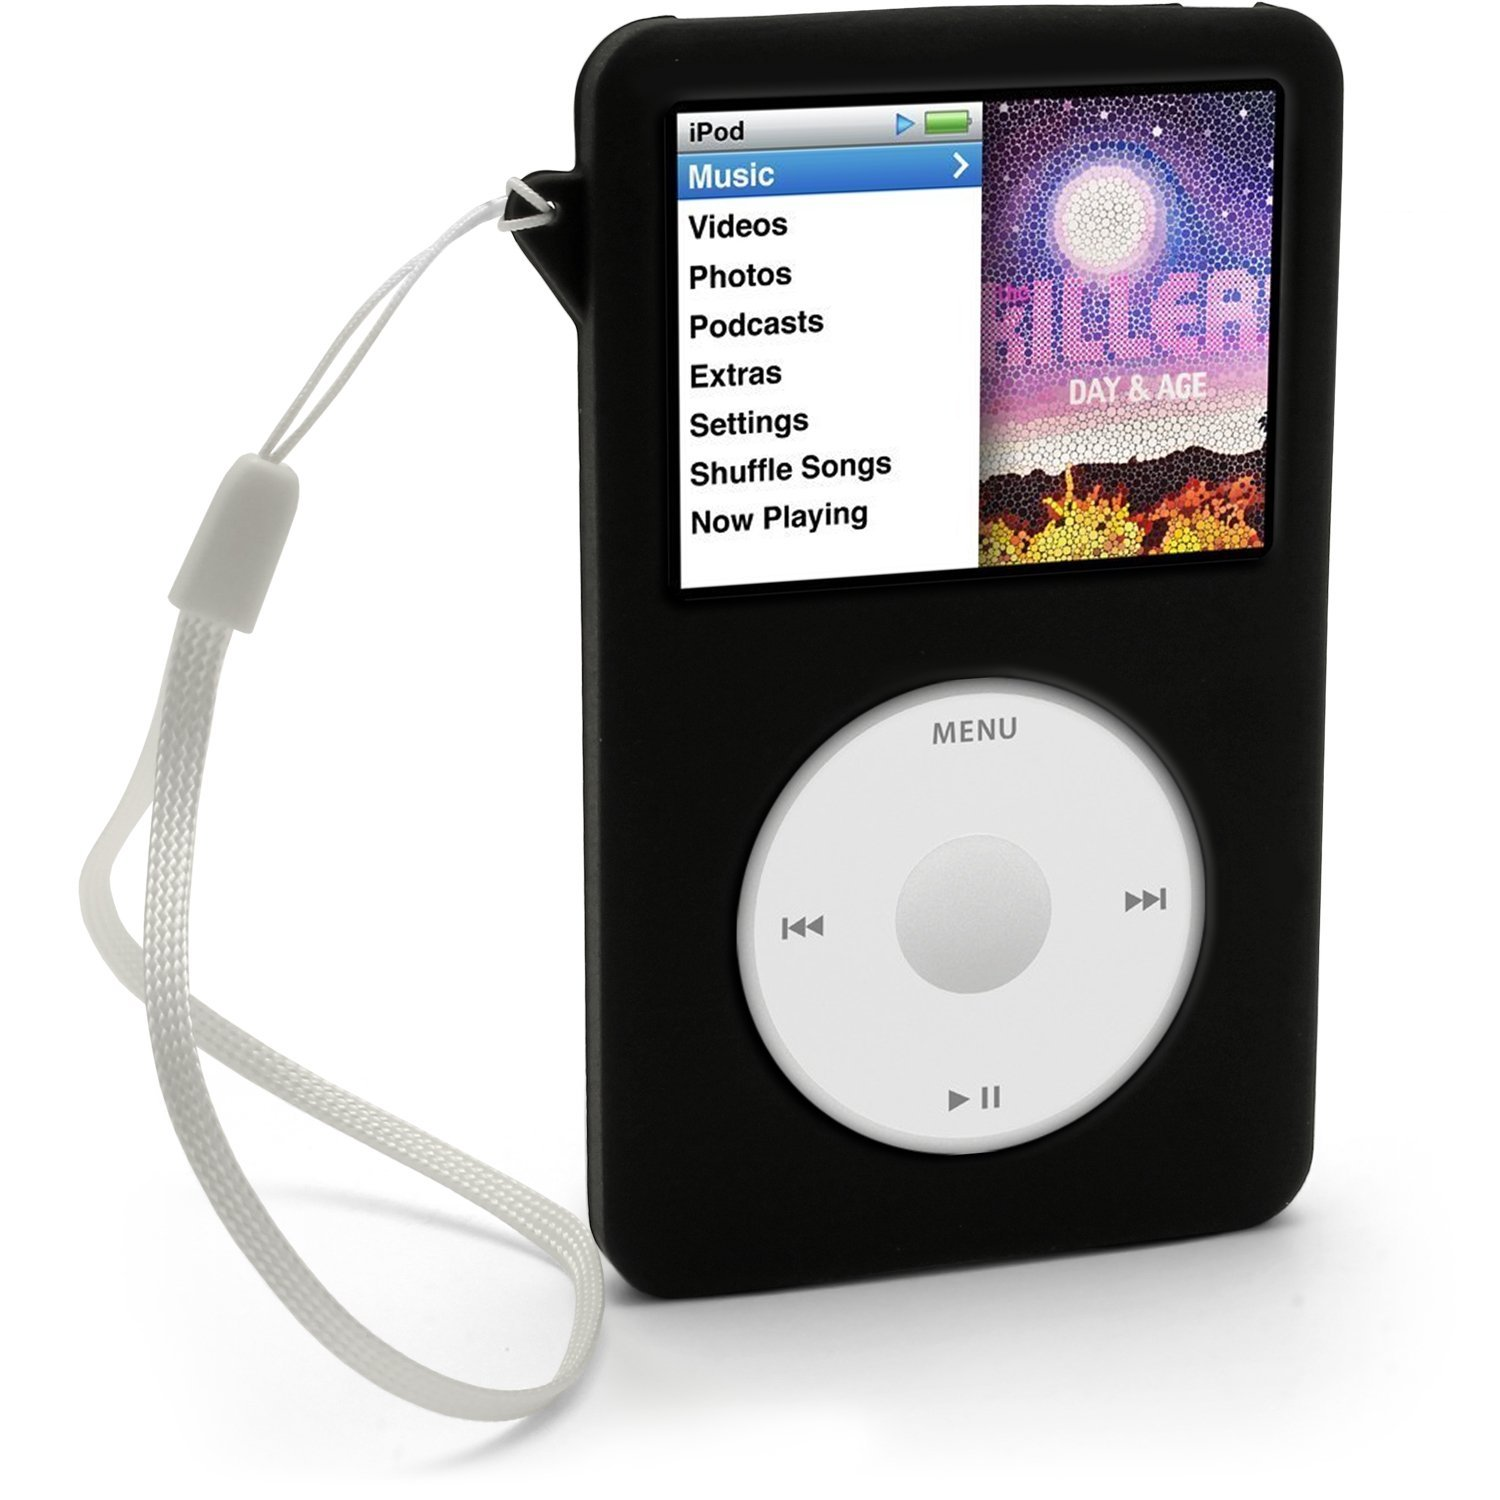 iGadgitz Black Silicone Skin Case Cover for Apple iPod Classic